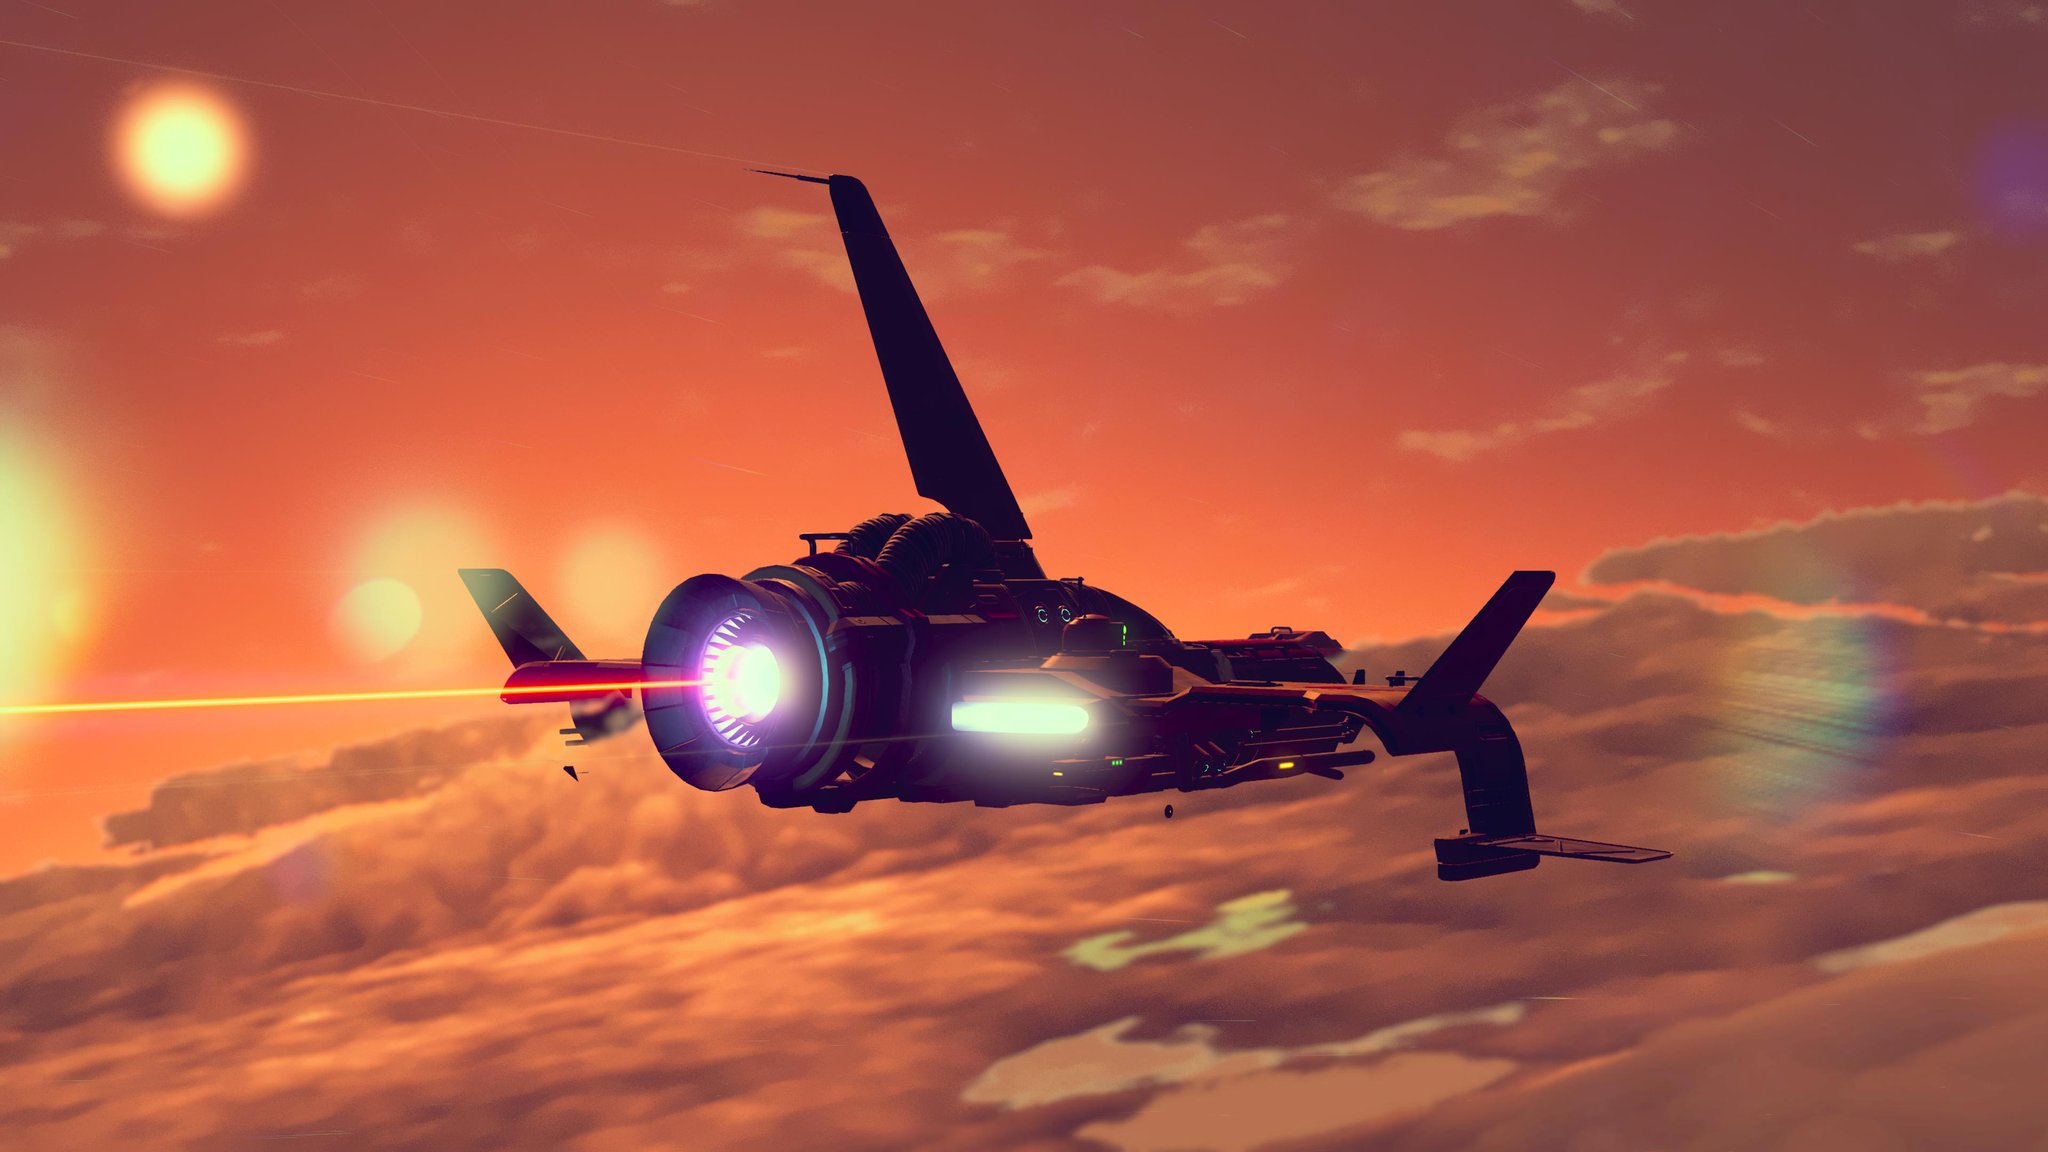 A fighter ship flies through some clouds, multiple suns and planets hang in the background.